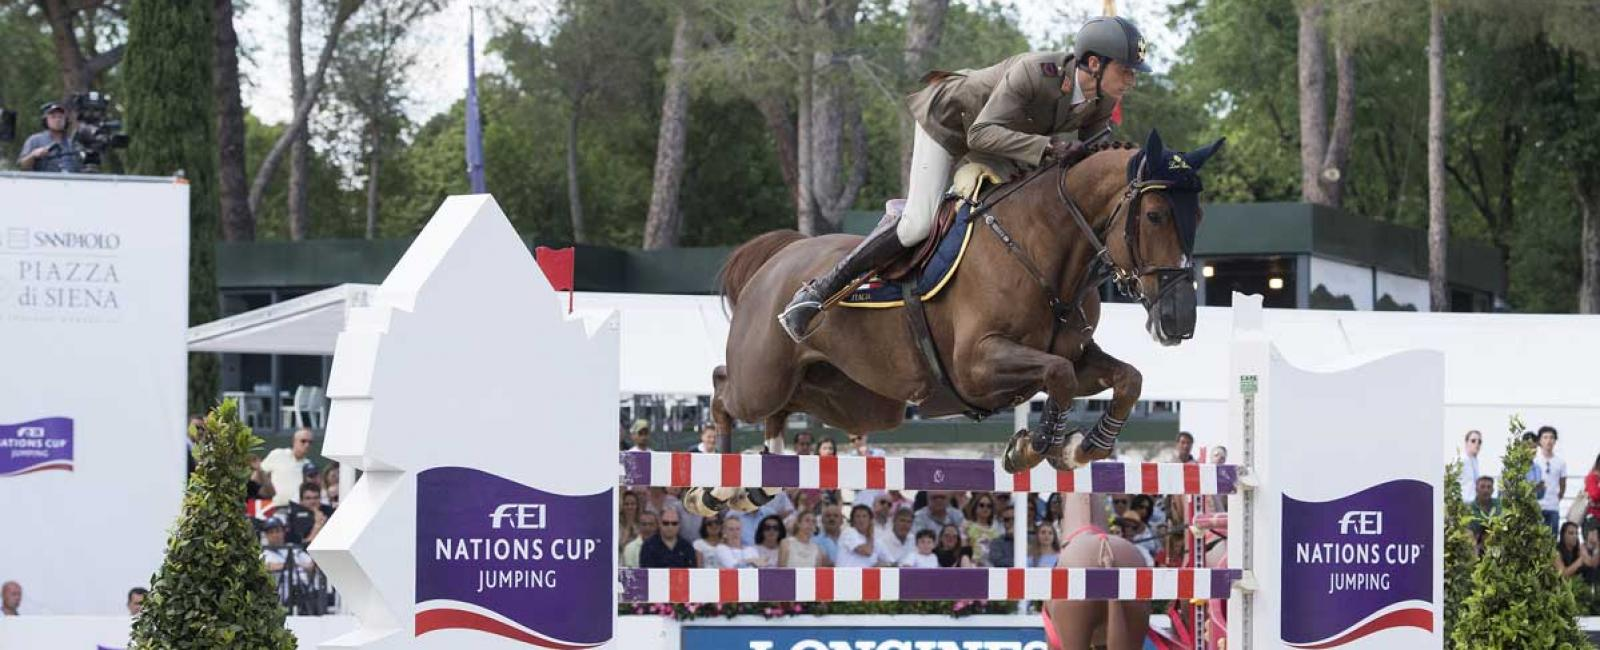 Team Italy streaks to victory at FEI Nations Cup™ Jumping presented by Longines in RomeTeam Italy streaks to victory at FEI Nations Cup™ Jumping presented by Longines in Rome, Longines, horses, victory